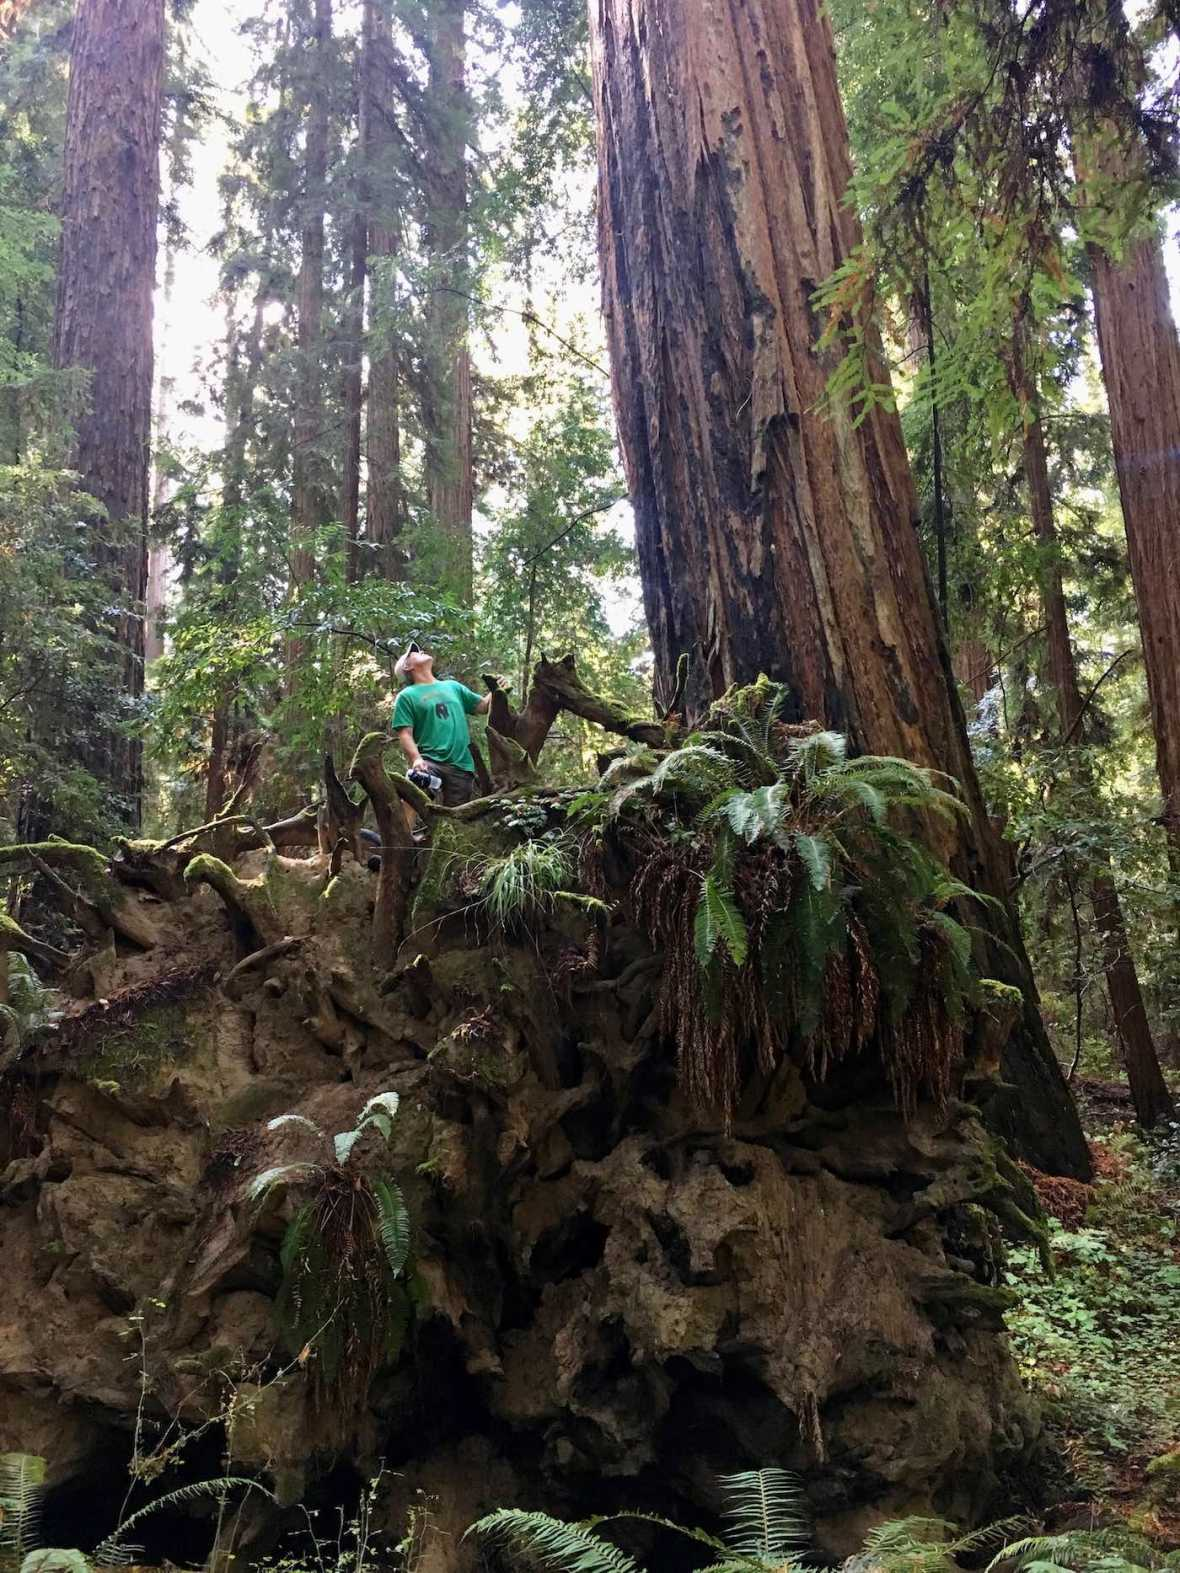 Fallen redwood tree in Big Hendy Grove at California's Hendy Woods State Park